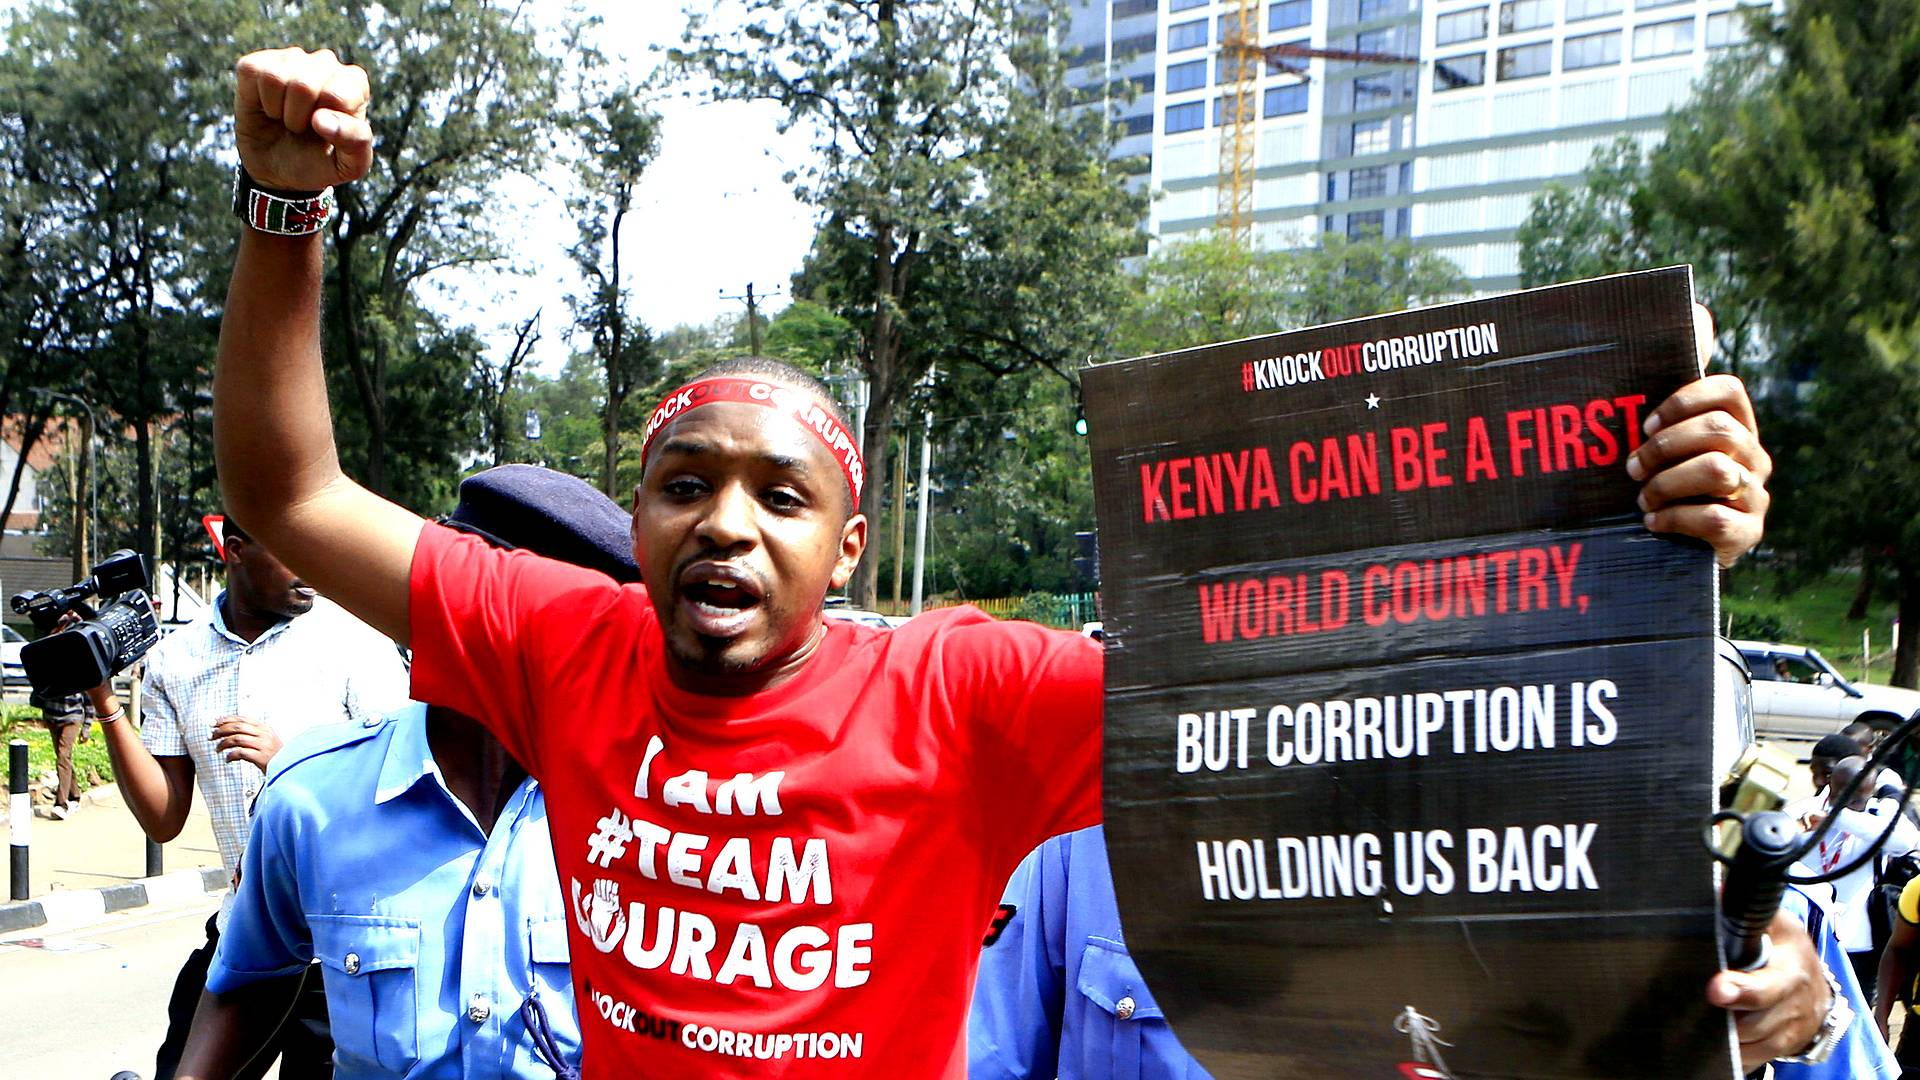 Murder of election chief casts shadow over next week's elections as many Kenyans take to streets to demand justice.